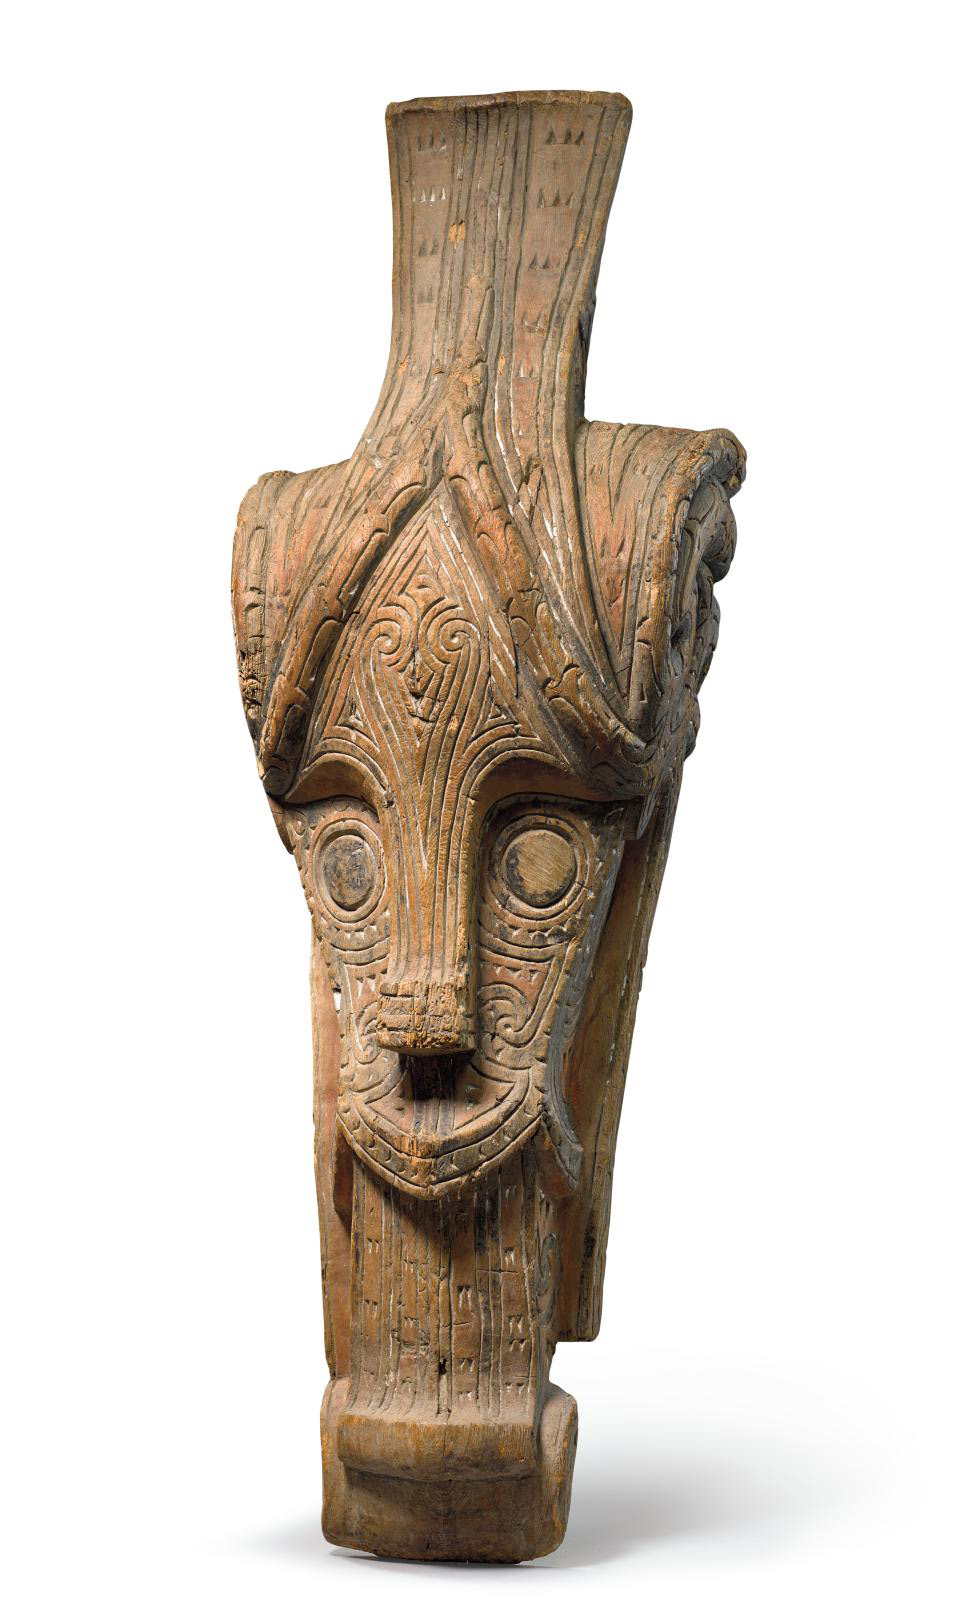 Batak people, Sumatra, Indonesia, Head of Singha, no date, wood with traces of polychrome, 125 x 43 x 35 cm/49.21 x 16.30 x 13.78 in. Font